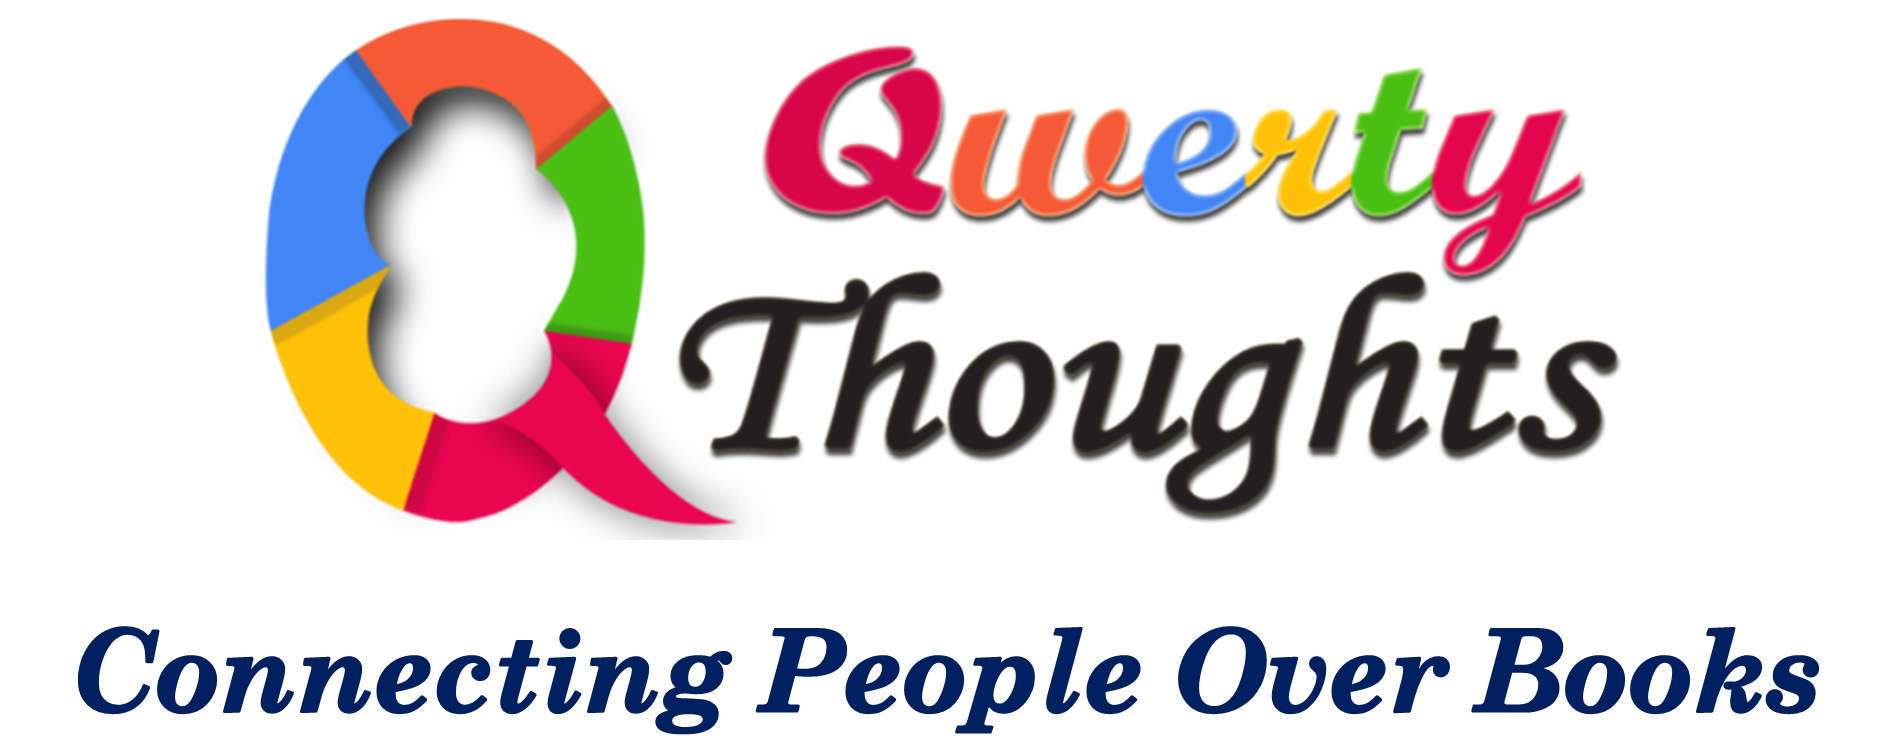 Don't Let Books Be Judged by Their Cover Anymore, with Live Books by Qwerty Thoughts